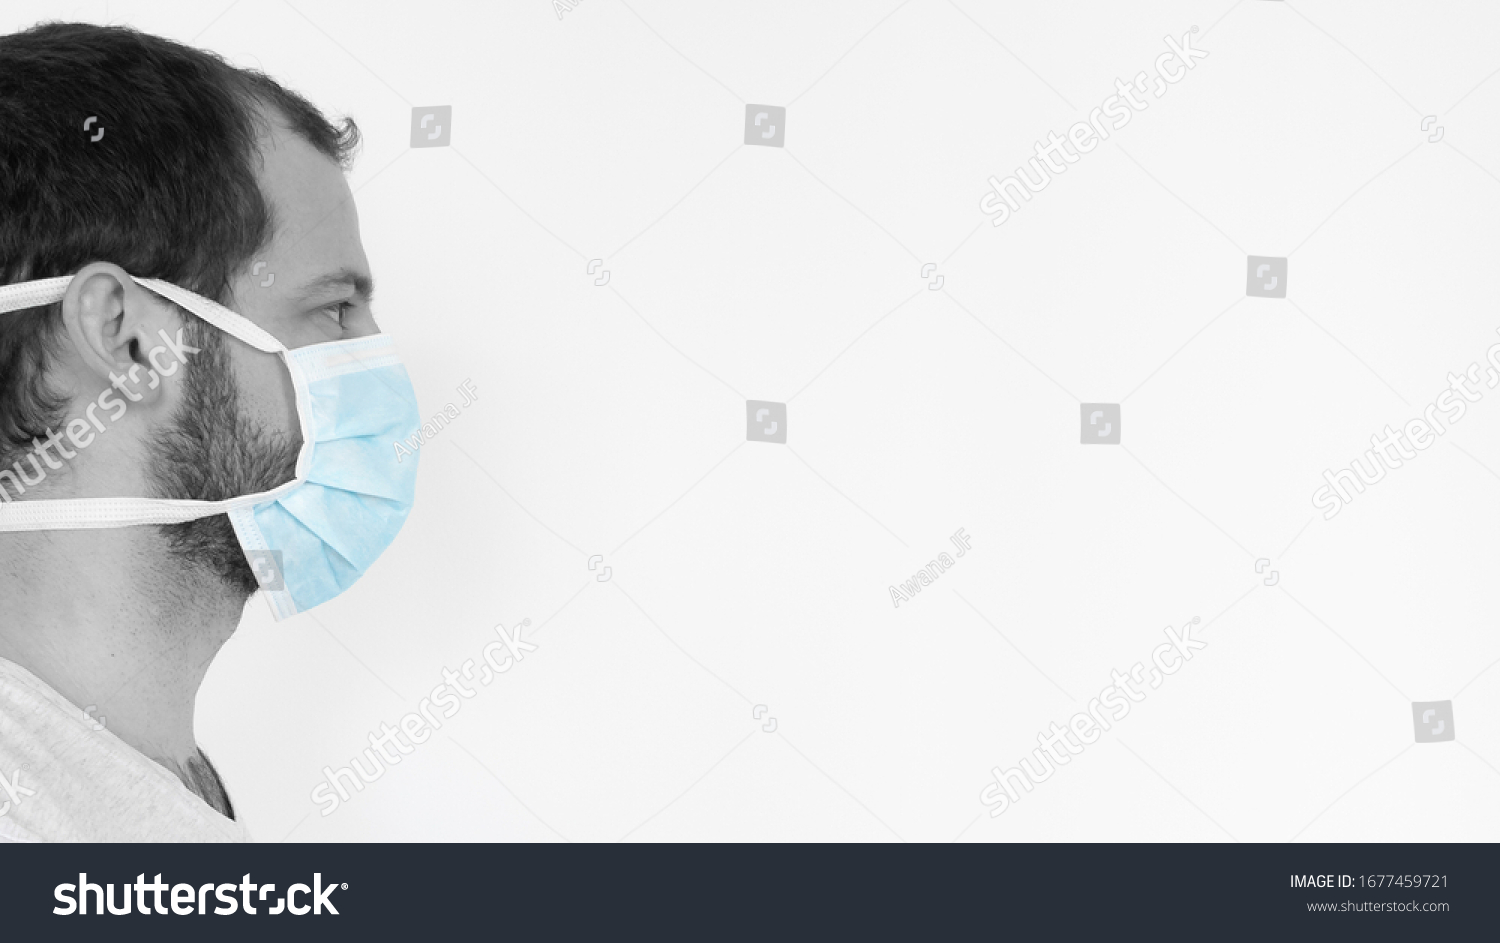 stock-photo-side-view-of-a-young-man-wea